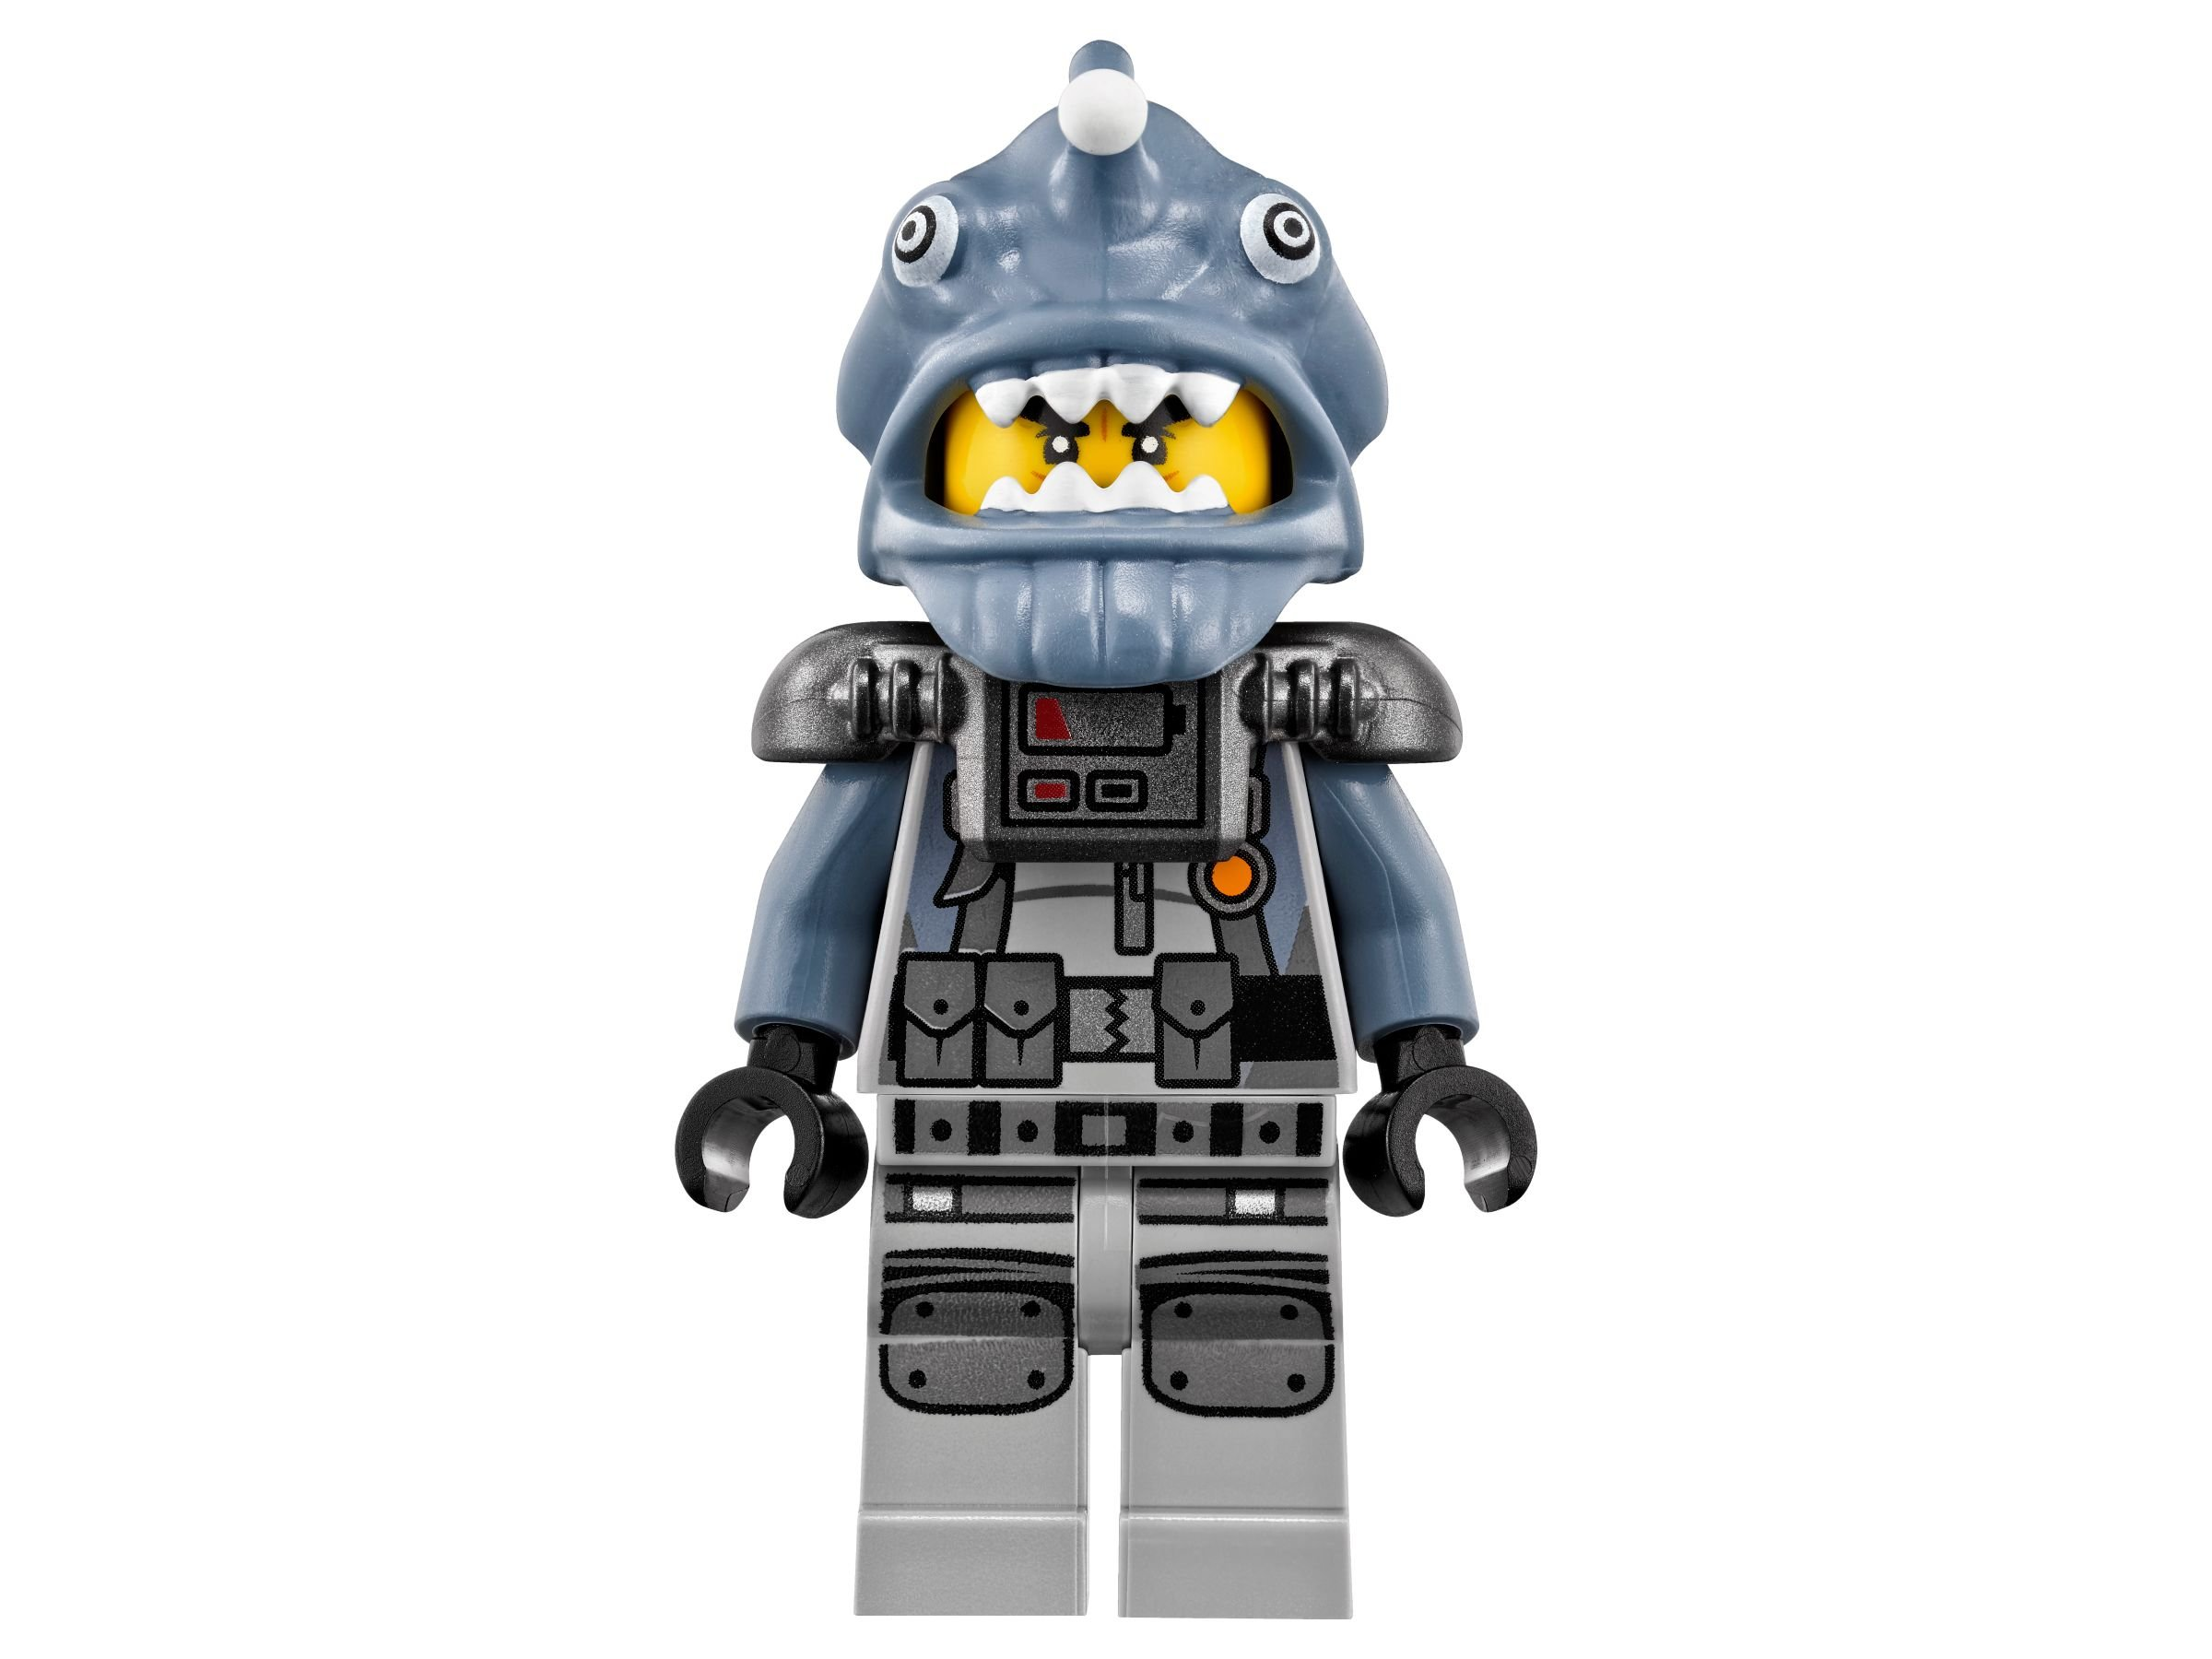 LEGO The LEGO Ninjago Movie 70616 Zane's Eis-Raupe LEGO_70616_alt13.jpg